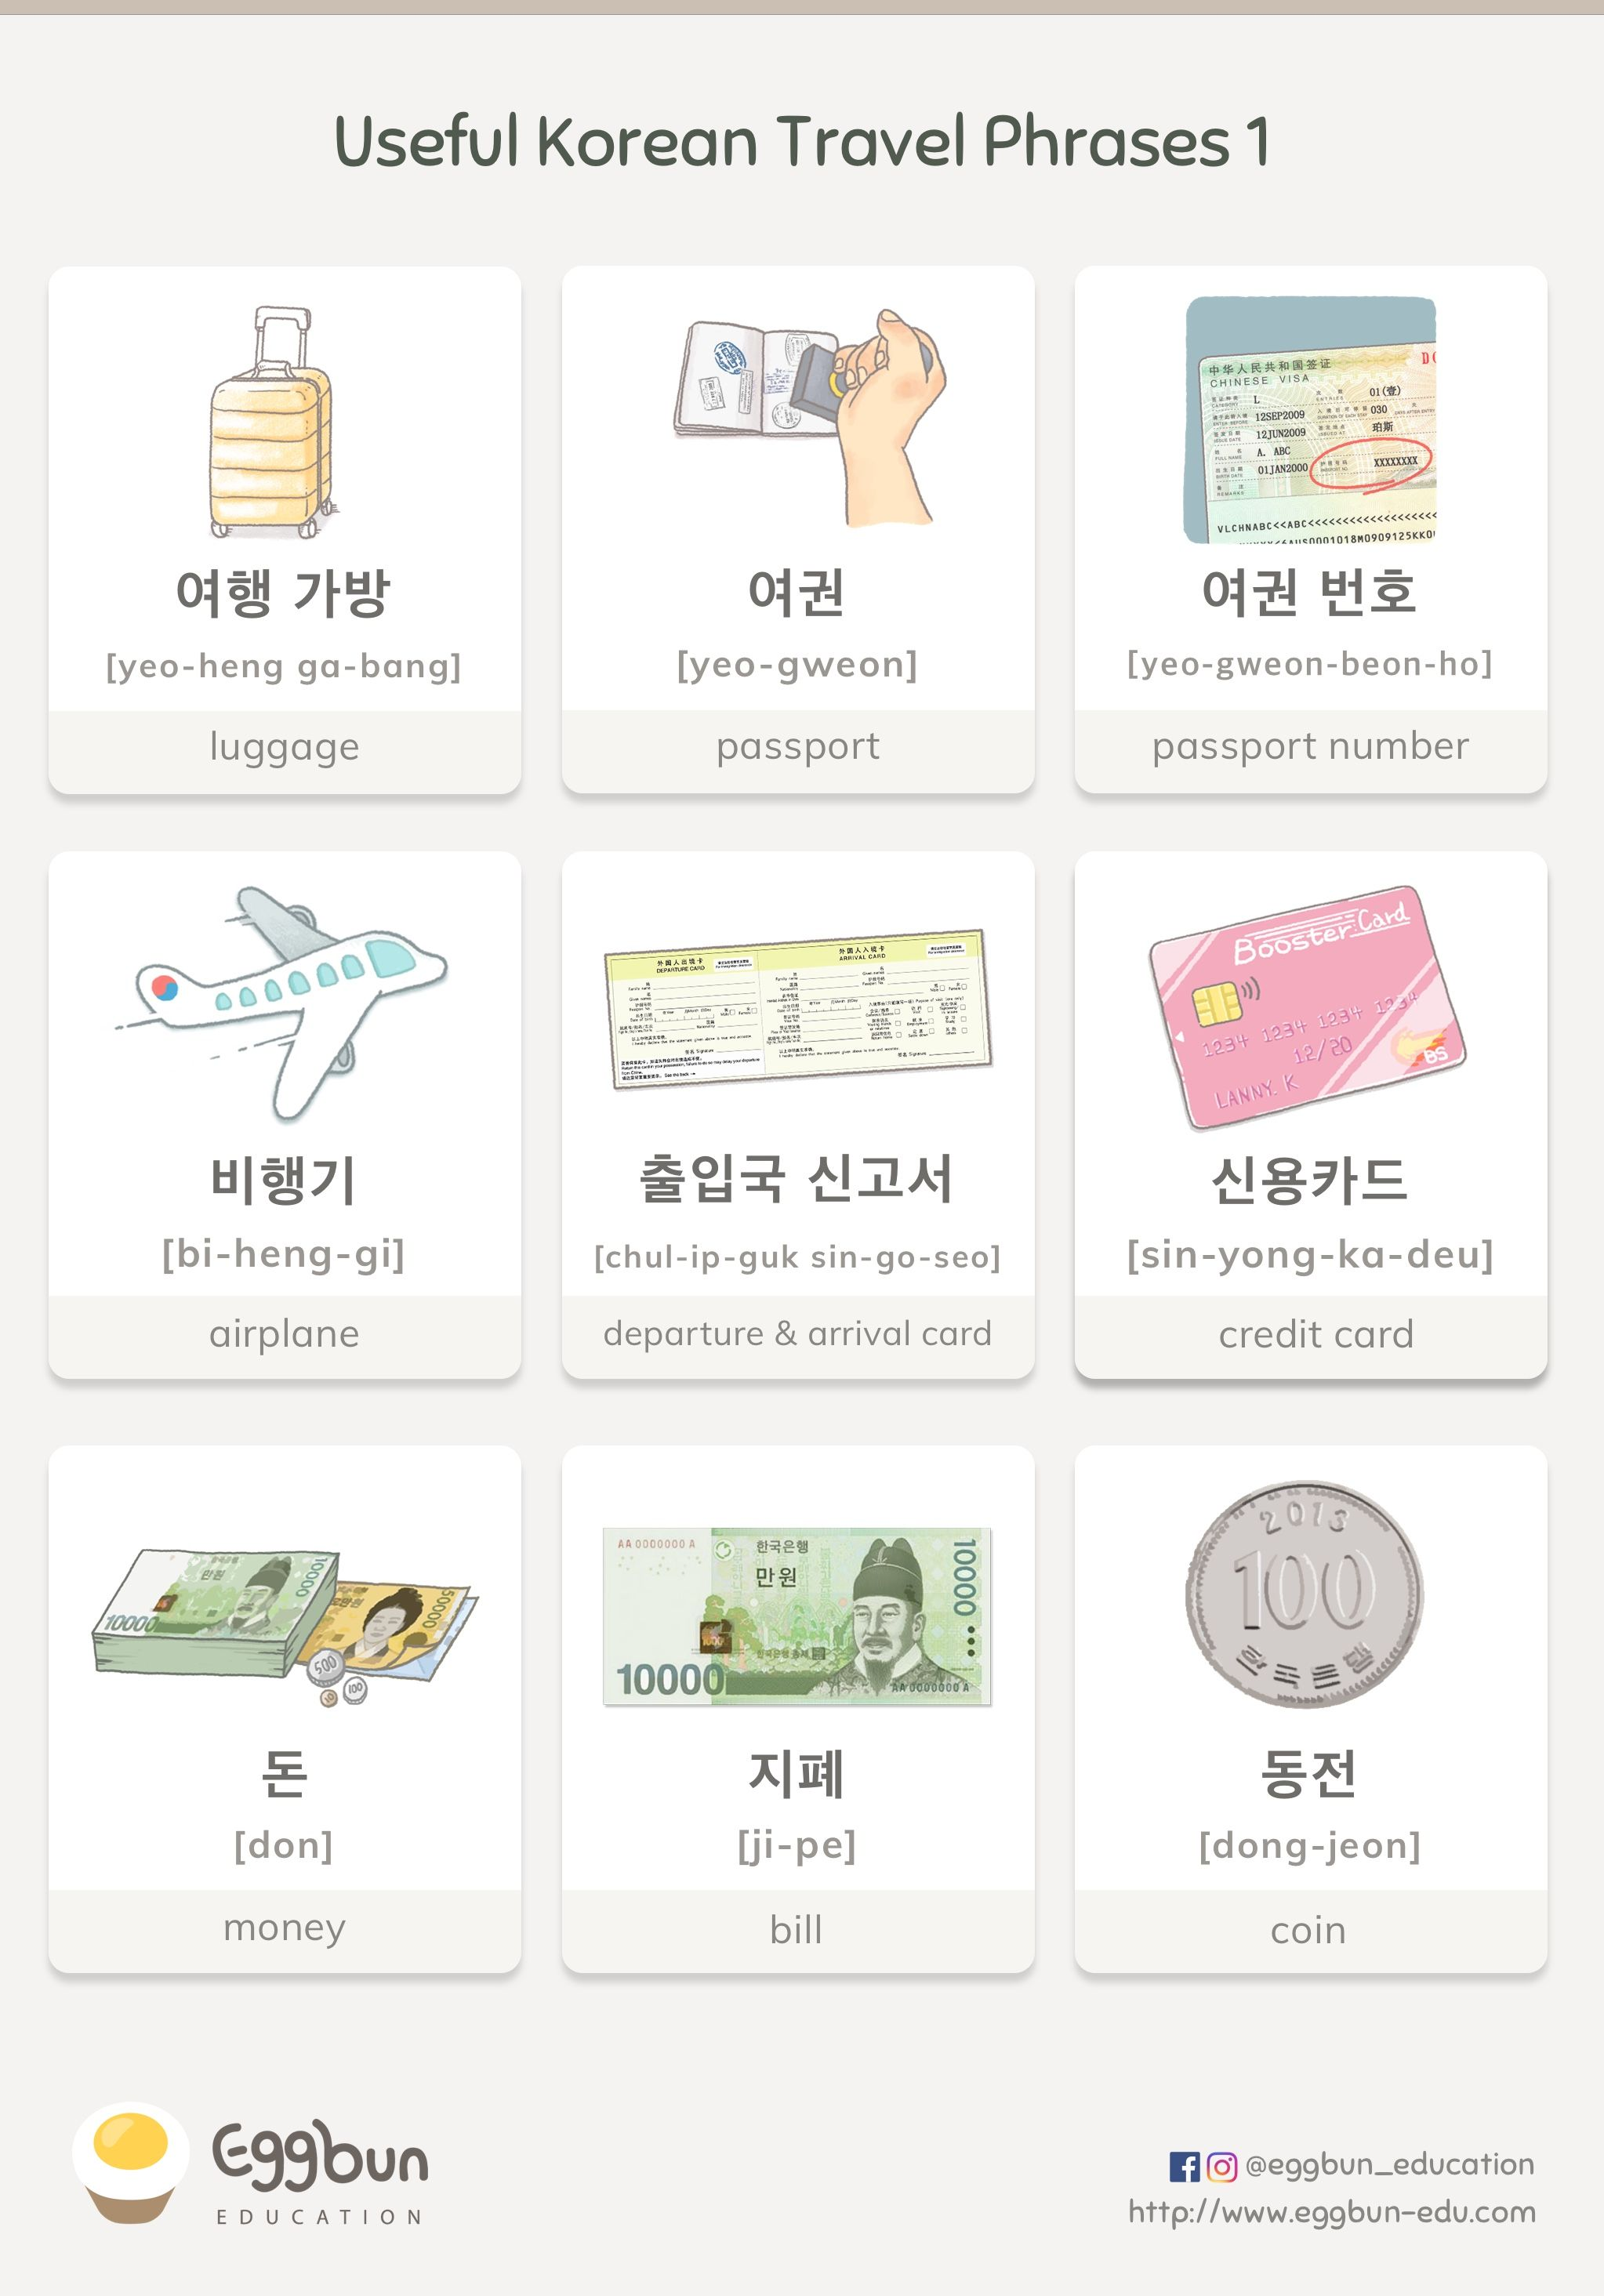 Useful Korean Travel Phrases 1 With Images